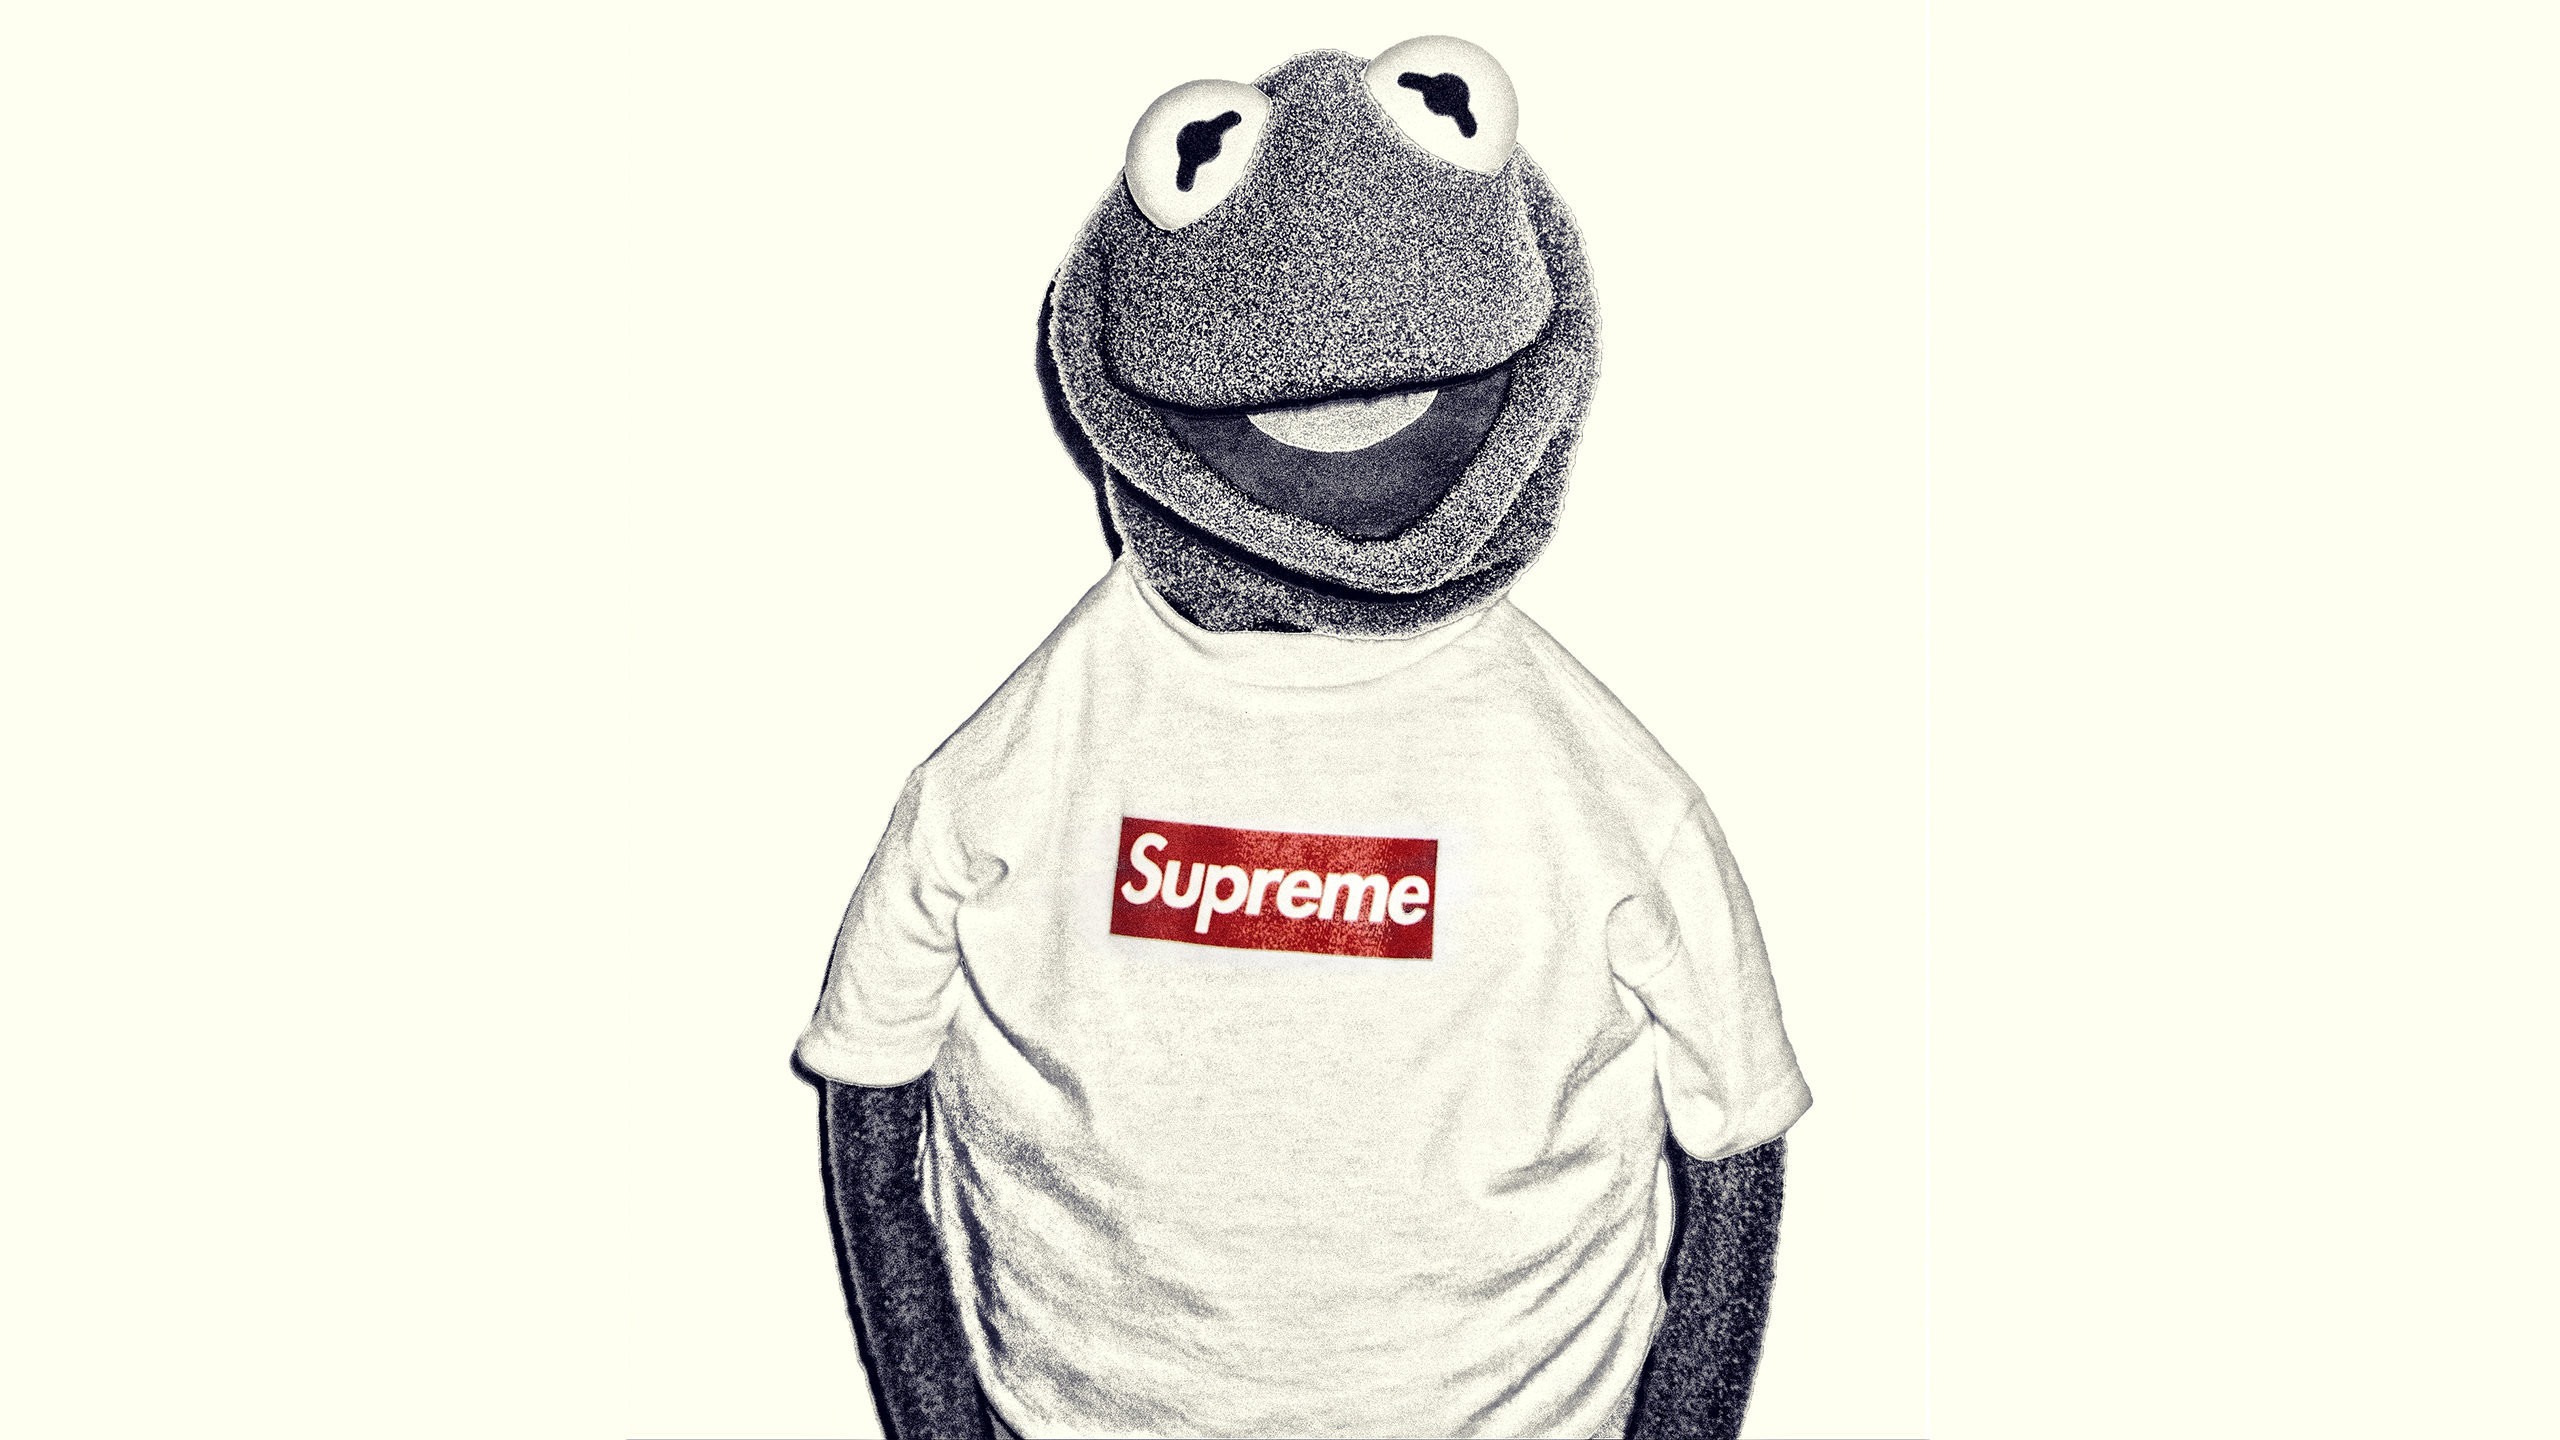 Download the Kermit Supreme wallpaper below for your mobile device (Android  phones, iPhone etc.)